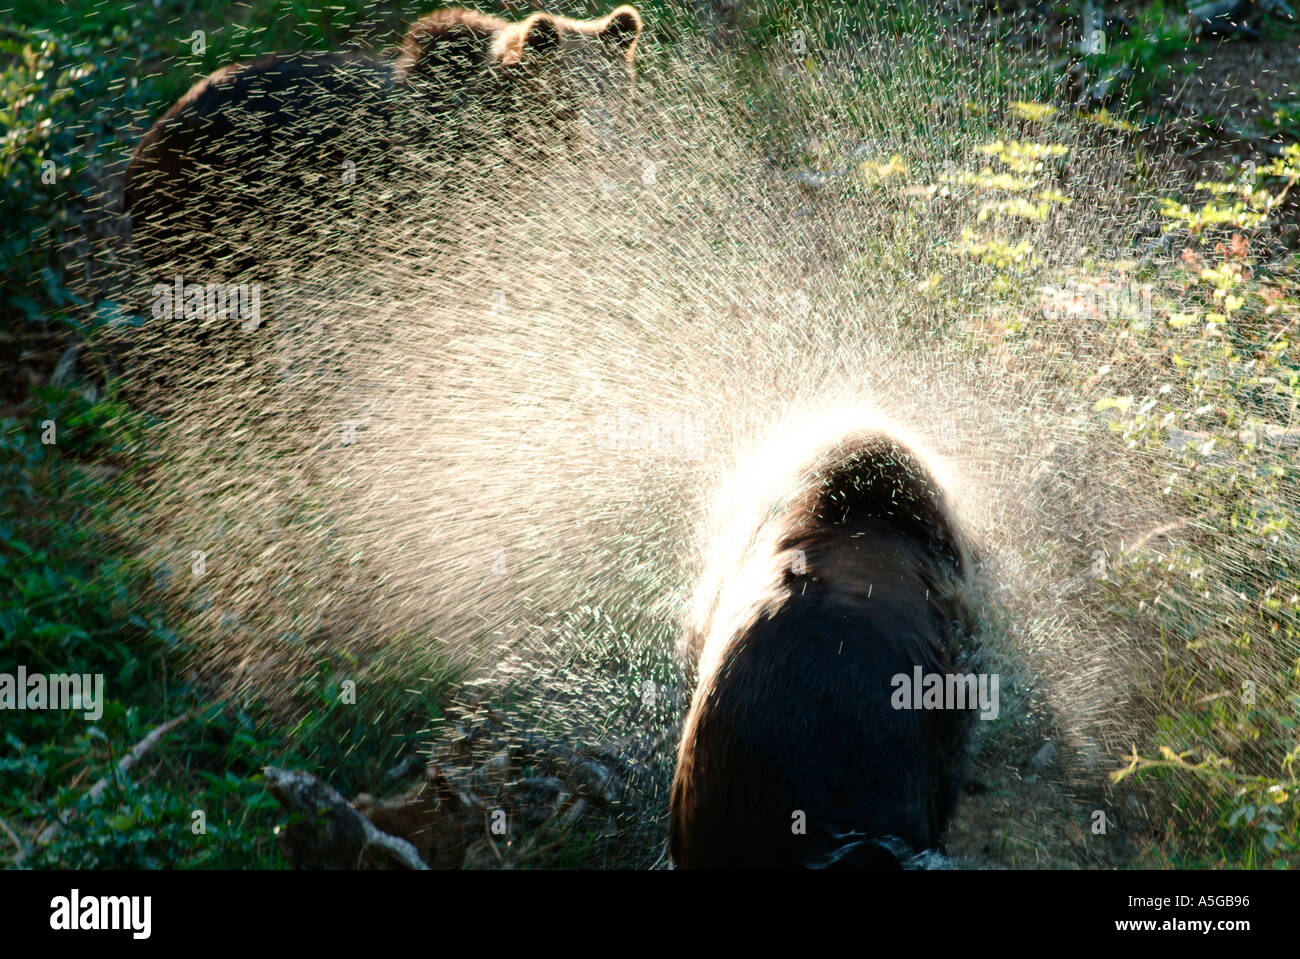 A young brown bear Ursus arctos shakes his wet fur while his sibling is waiting for him  - Stock Image